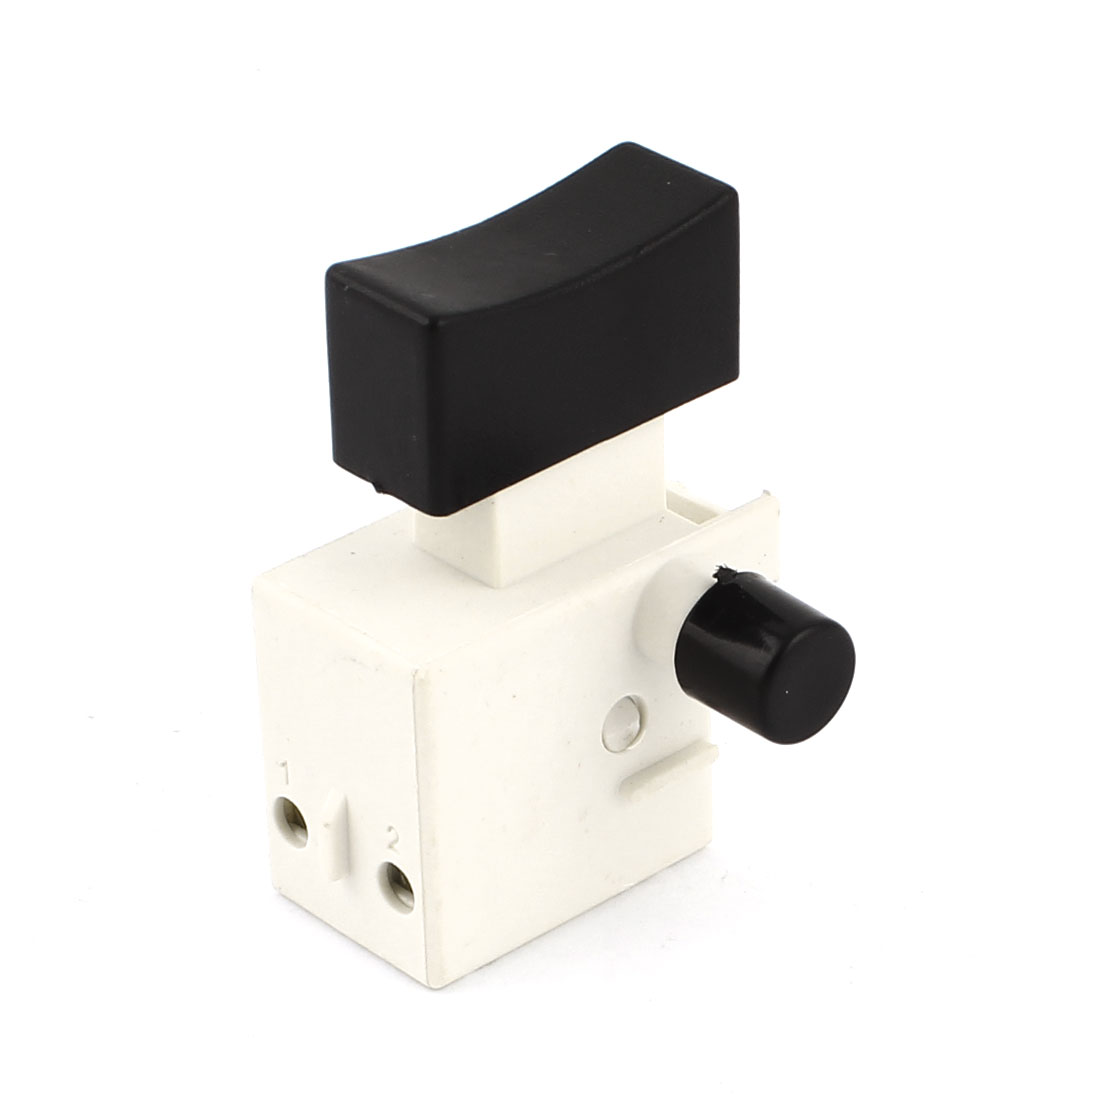 AC 250V 4A 125V 8A DPST Lock on Trigger Switch Black White for Electric Drill